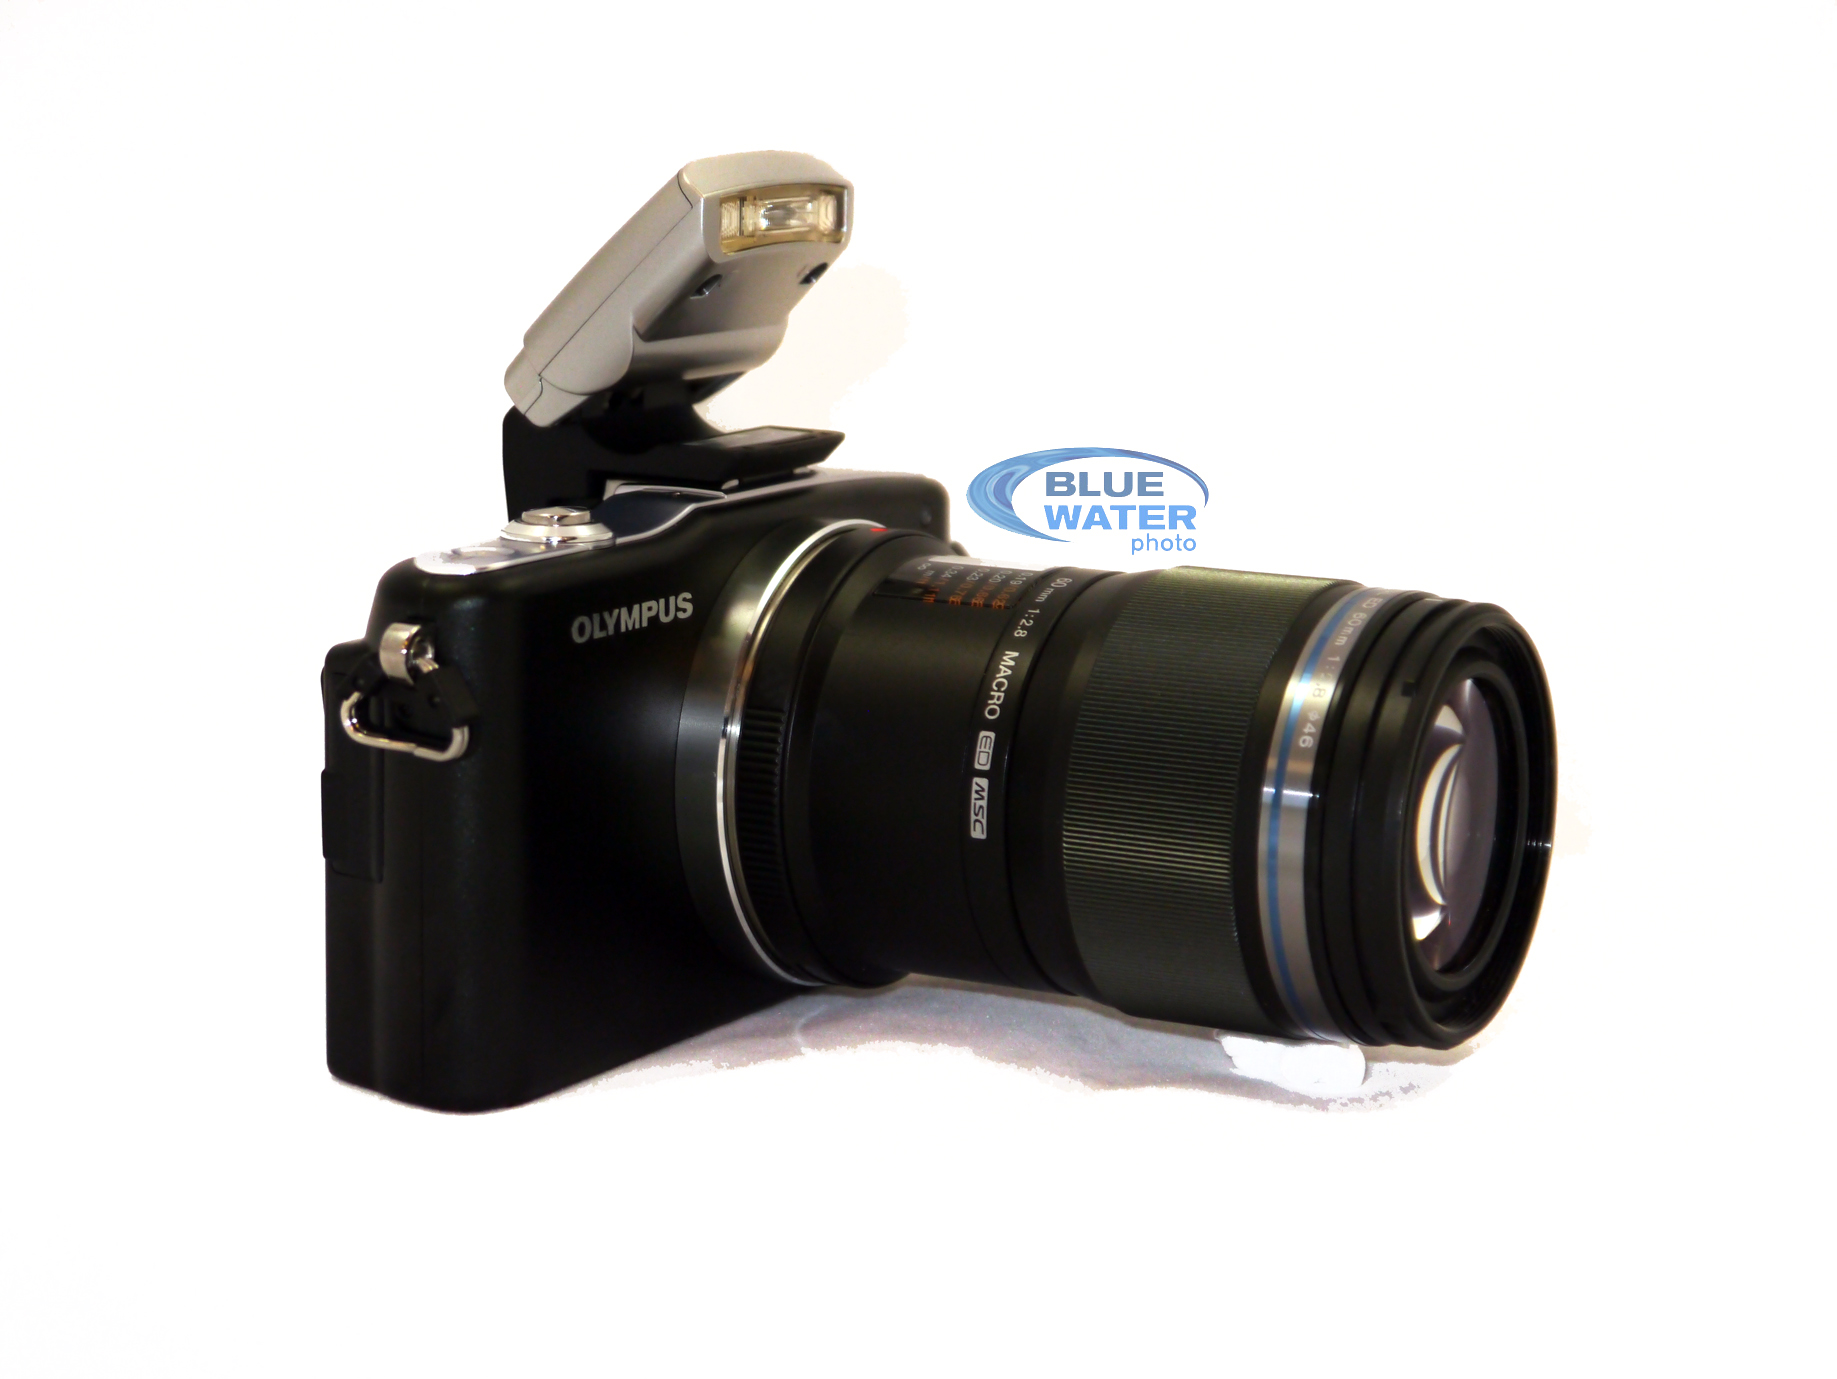 Nauticam Adds Support for the Olympus 60mm Macro Lens